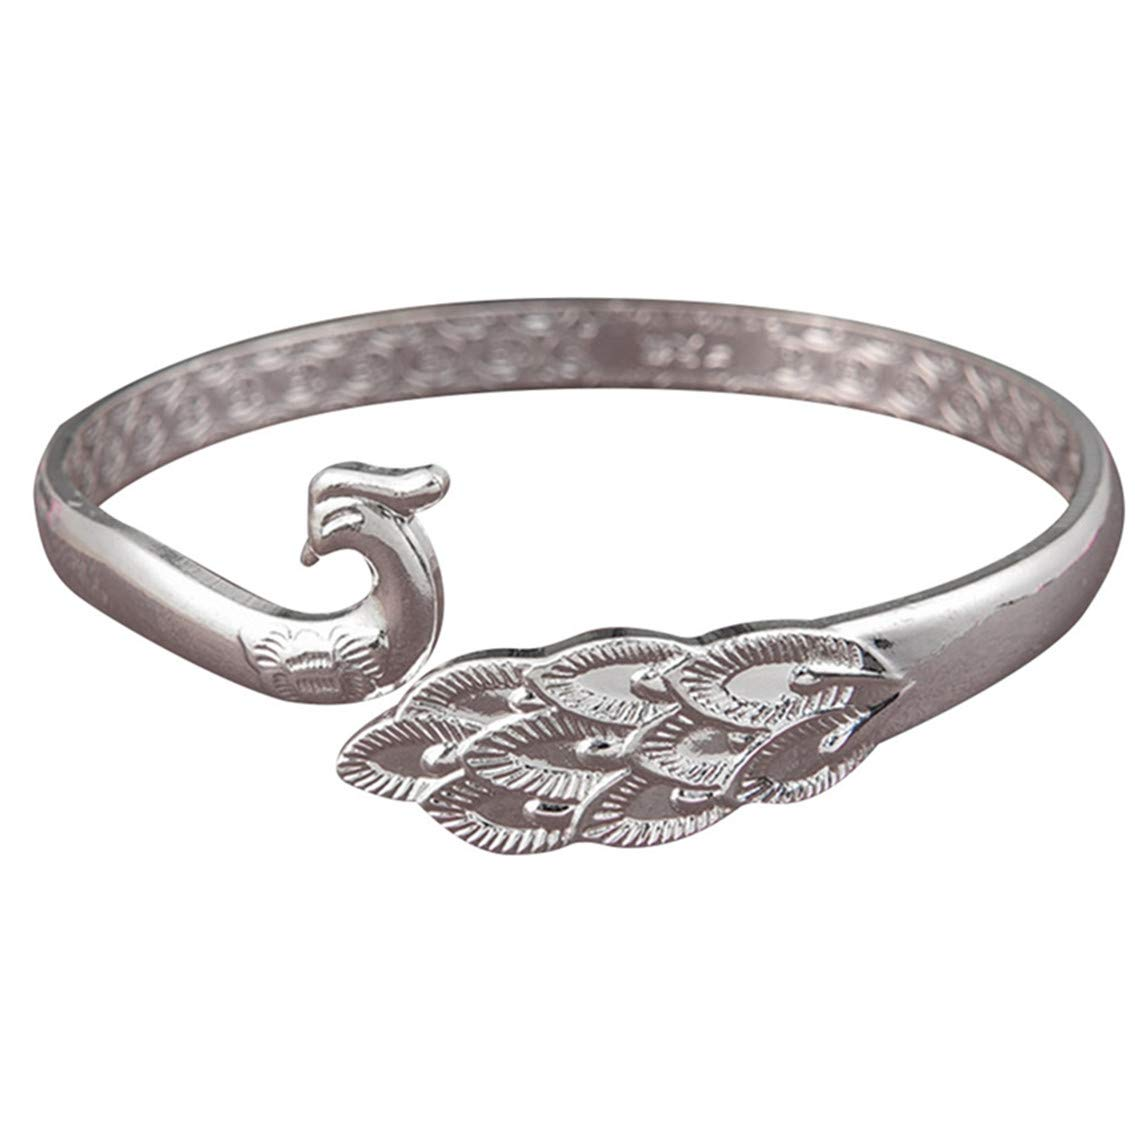 Weiy Peacock Bangle Bracelet Adjustable Silver Wristbands Women Bracelets Bangles Accessories for Girls Gift Trendy Jewelry